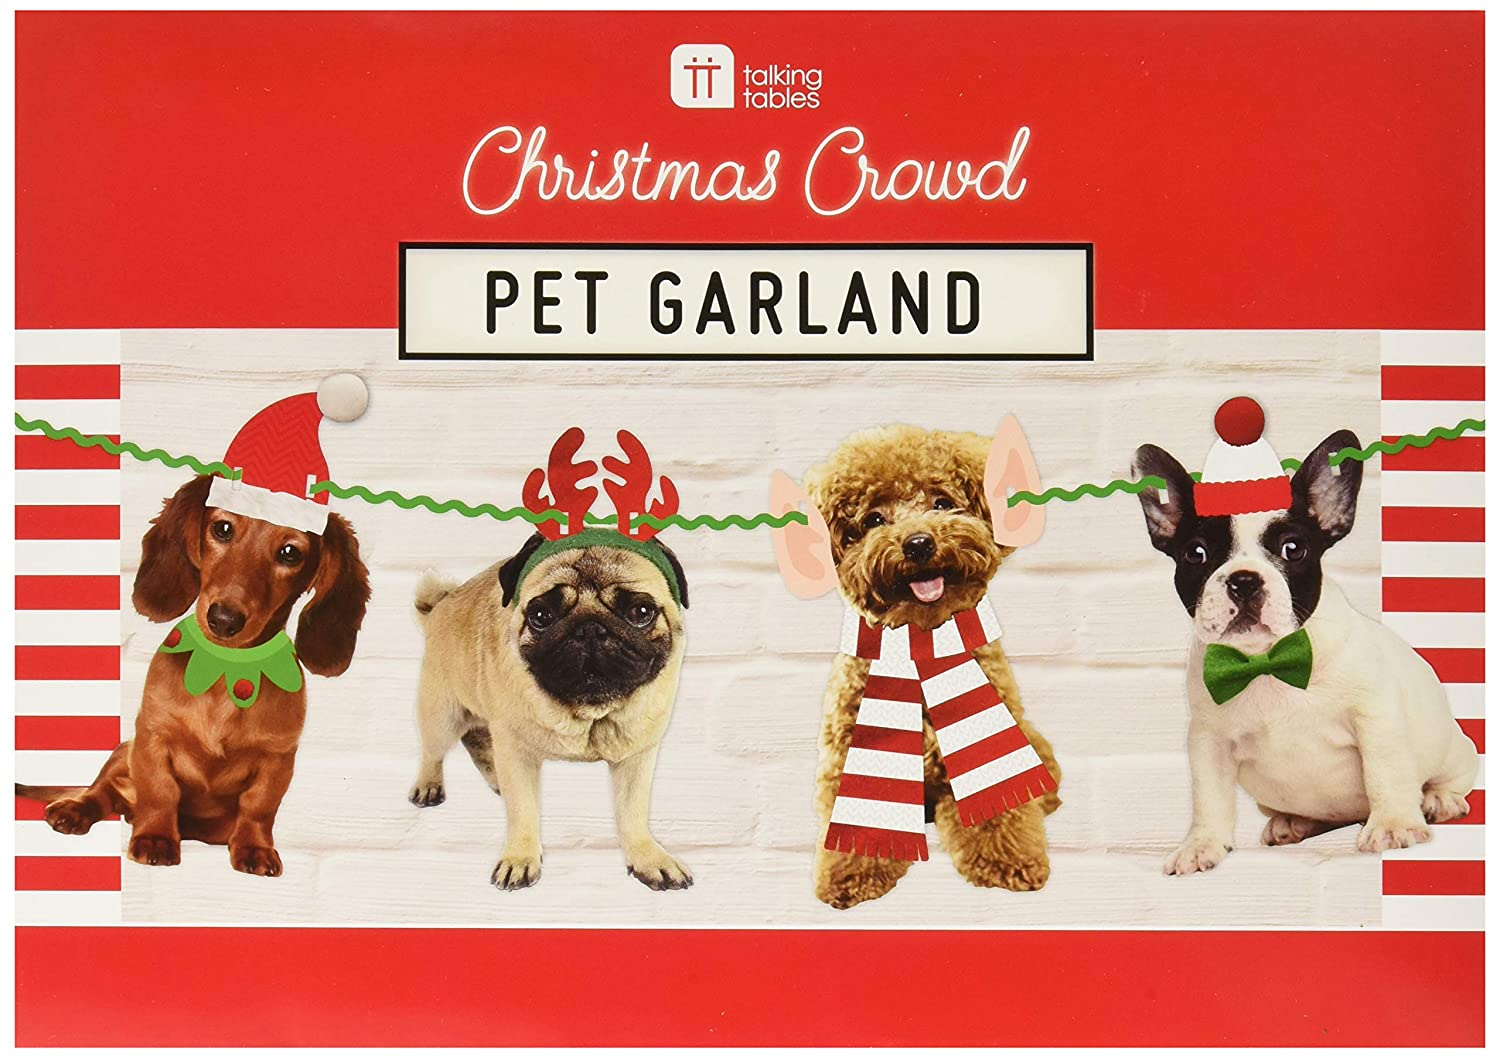 3m Talking Tables Christmas Entertainment Humorous Dog Garland with 10 Pennants for Christmas Decoration and Party